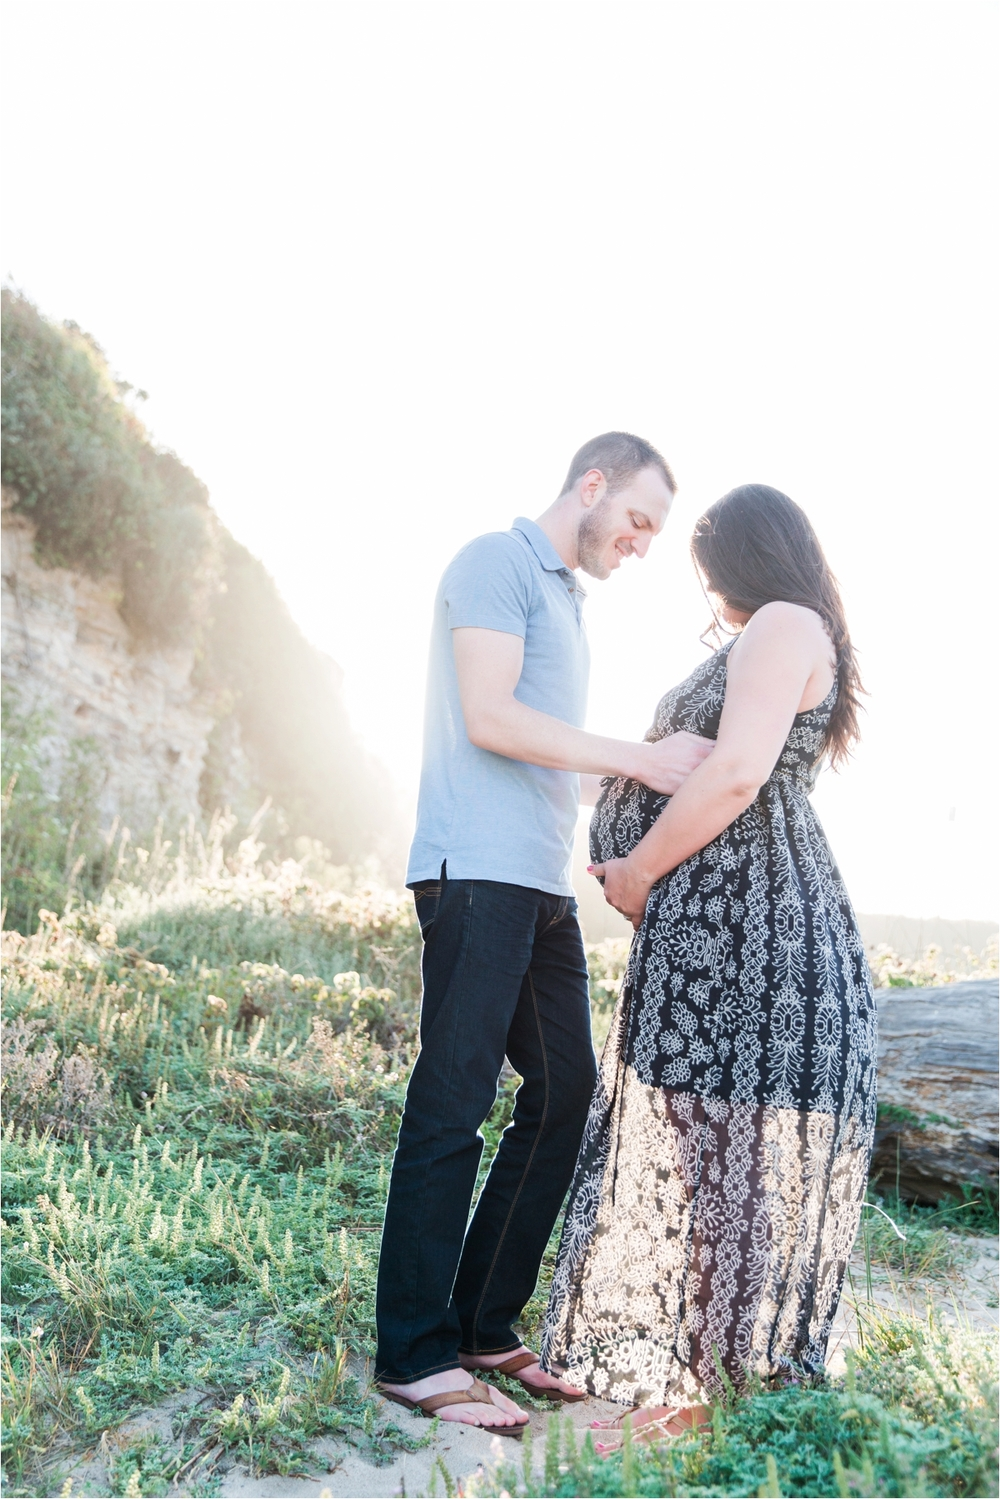 Beach Maternity pictures by Briana Calderon Photography_0324.jpg